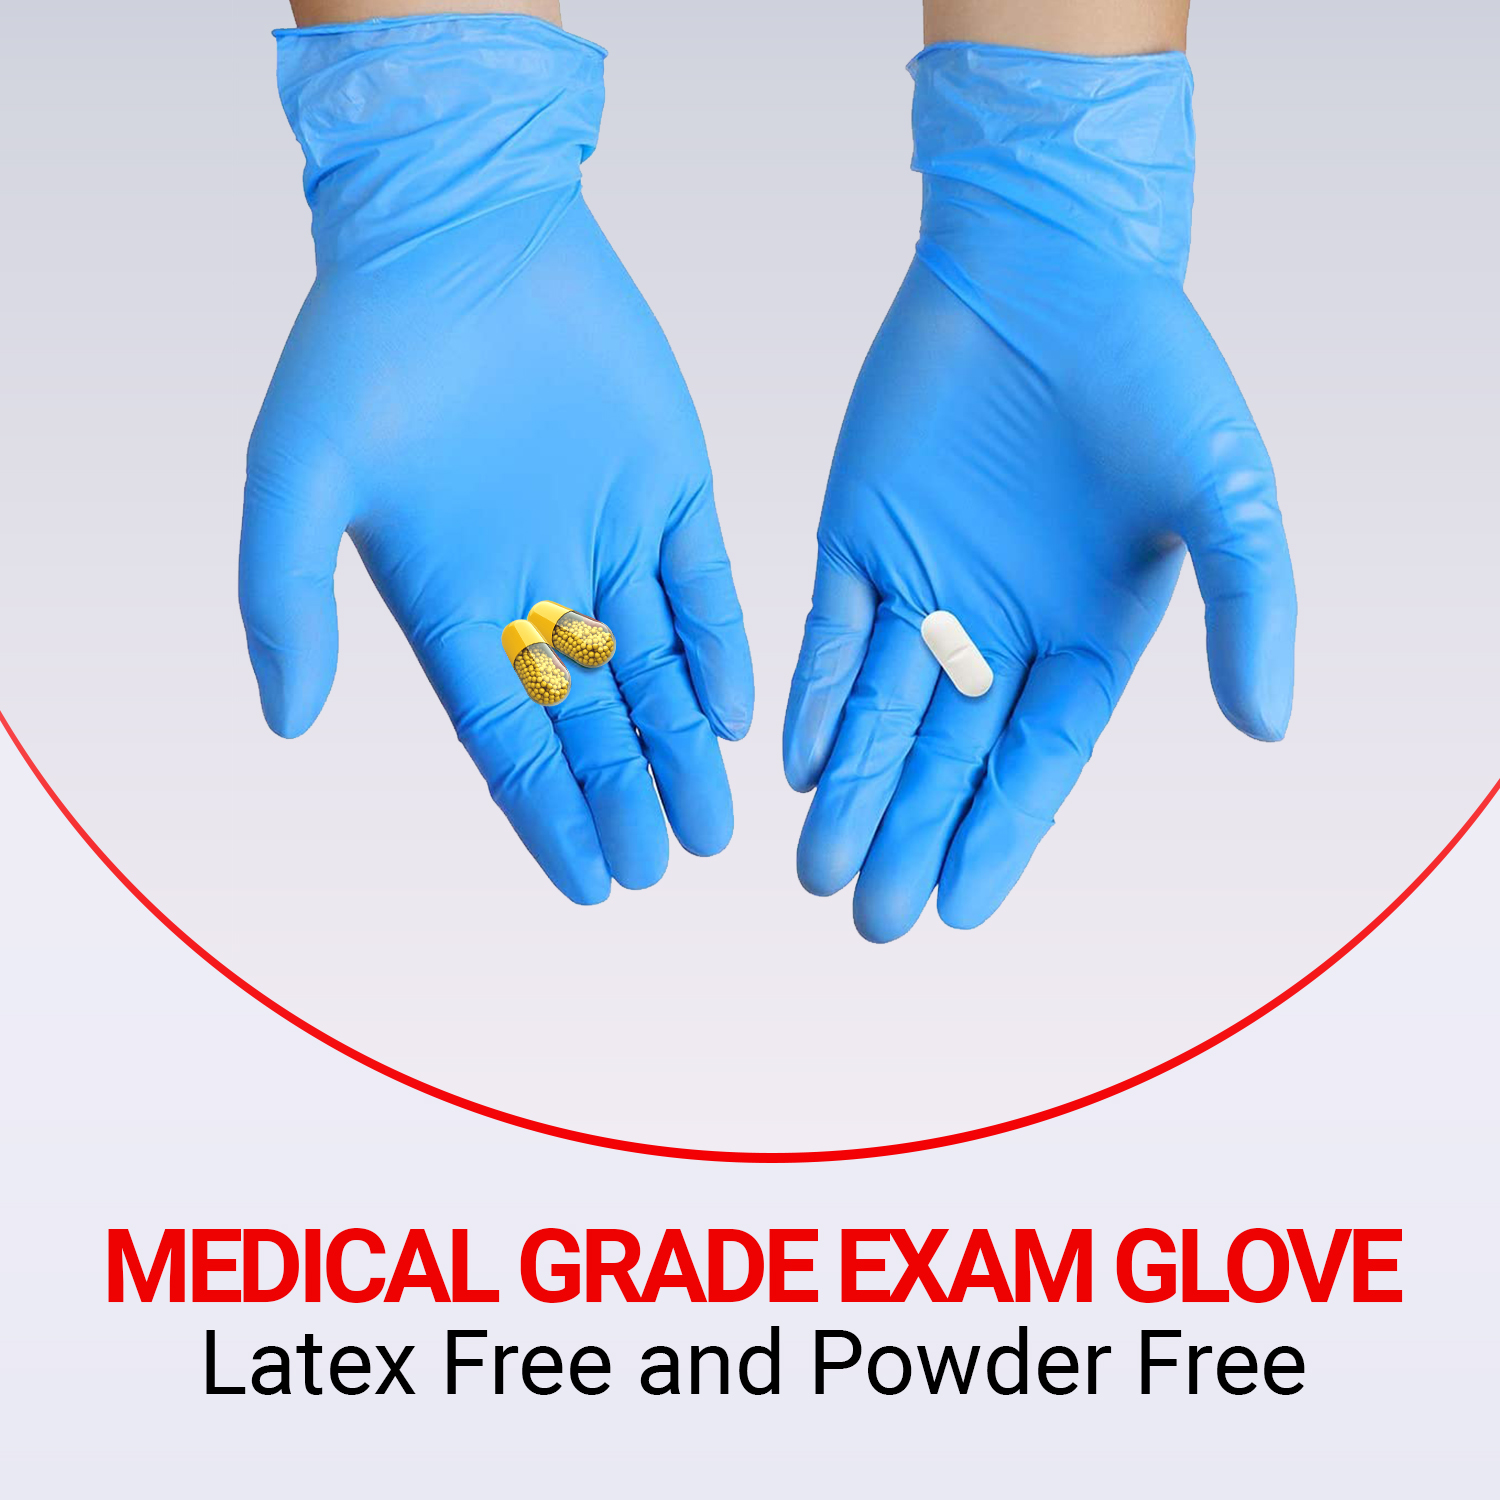 Disposable Synmax Hybrid Nitrile Vinyl Exam Gloves - 4 Mil-Thick -Latex Free Powder Free, Food Safe, Cleaning Gloves-Blue - Large